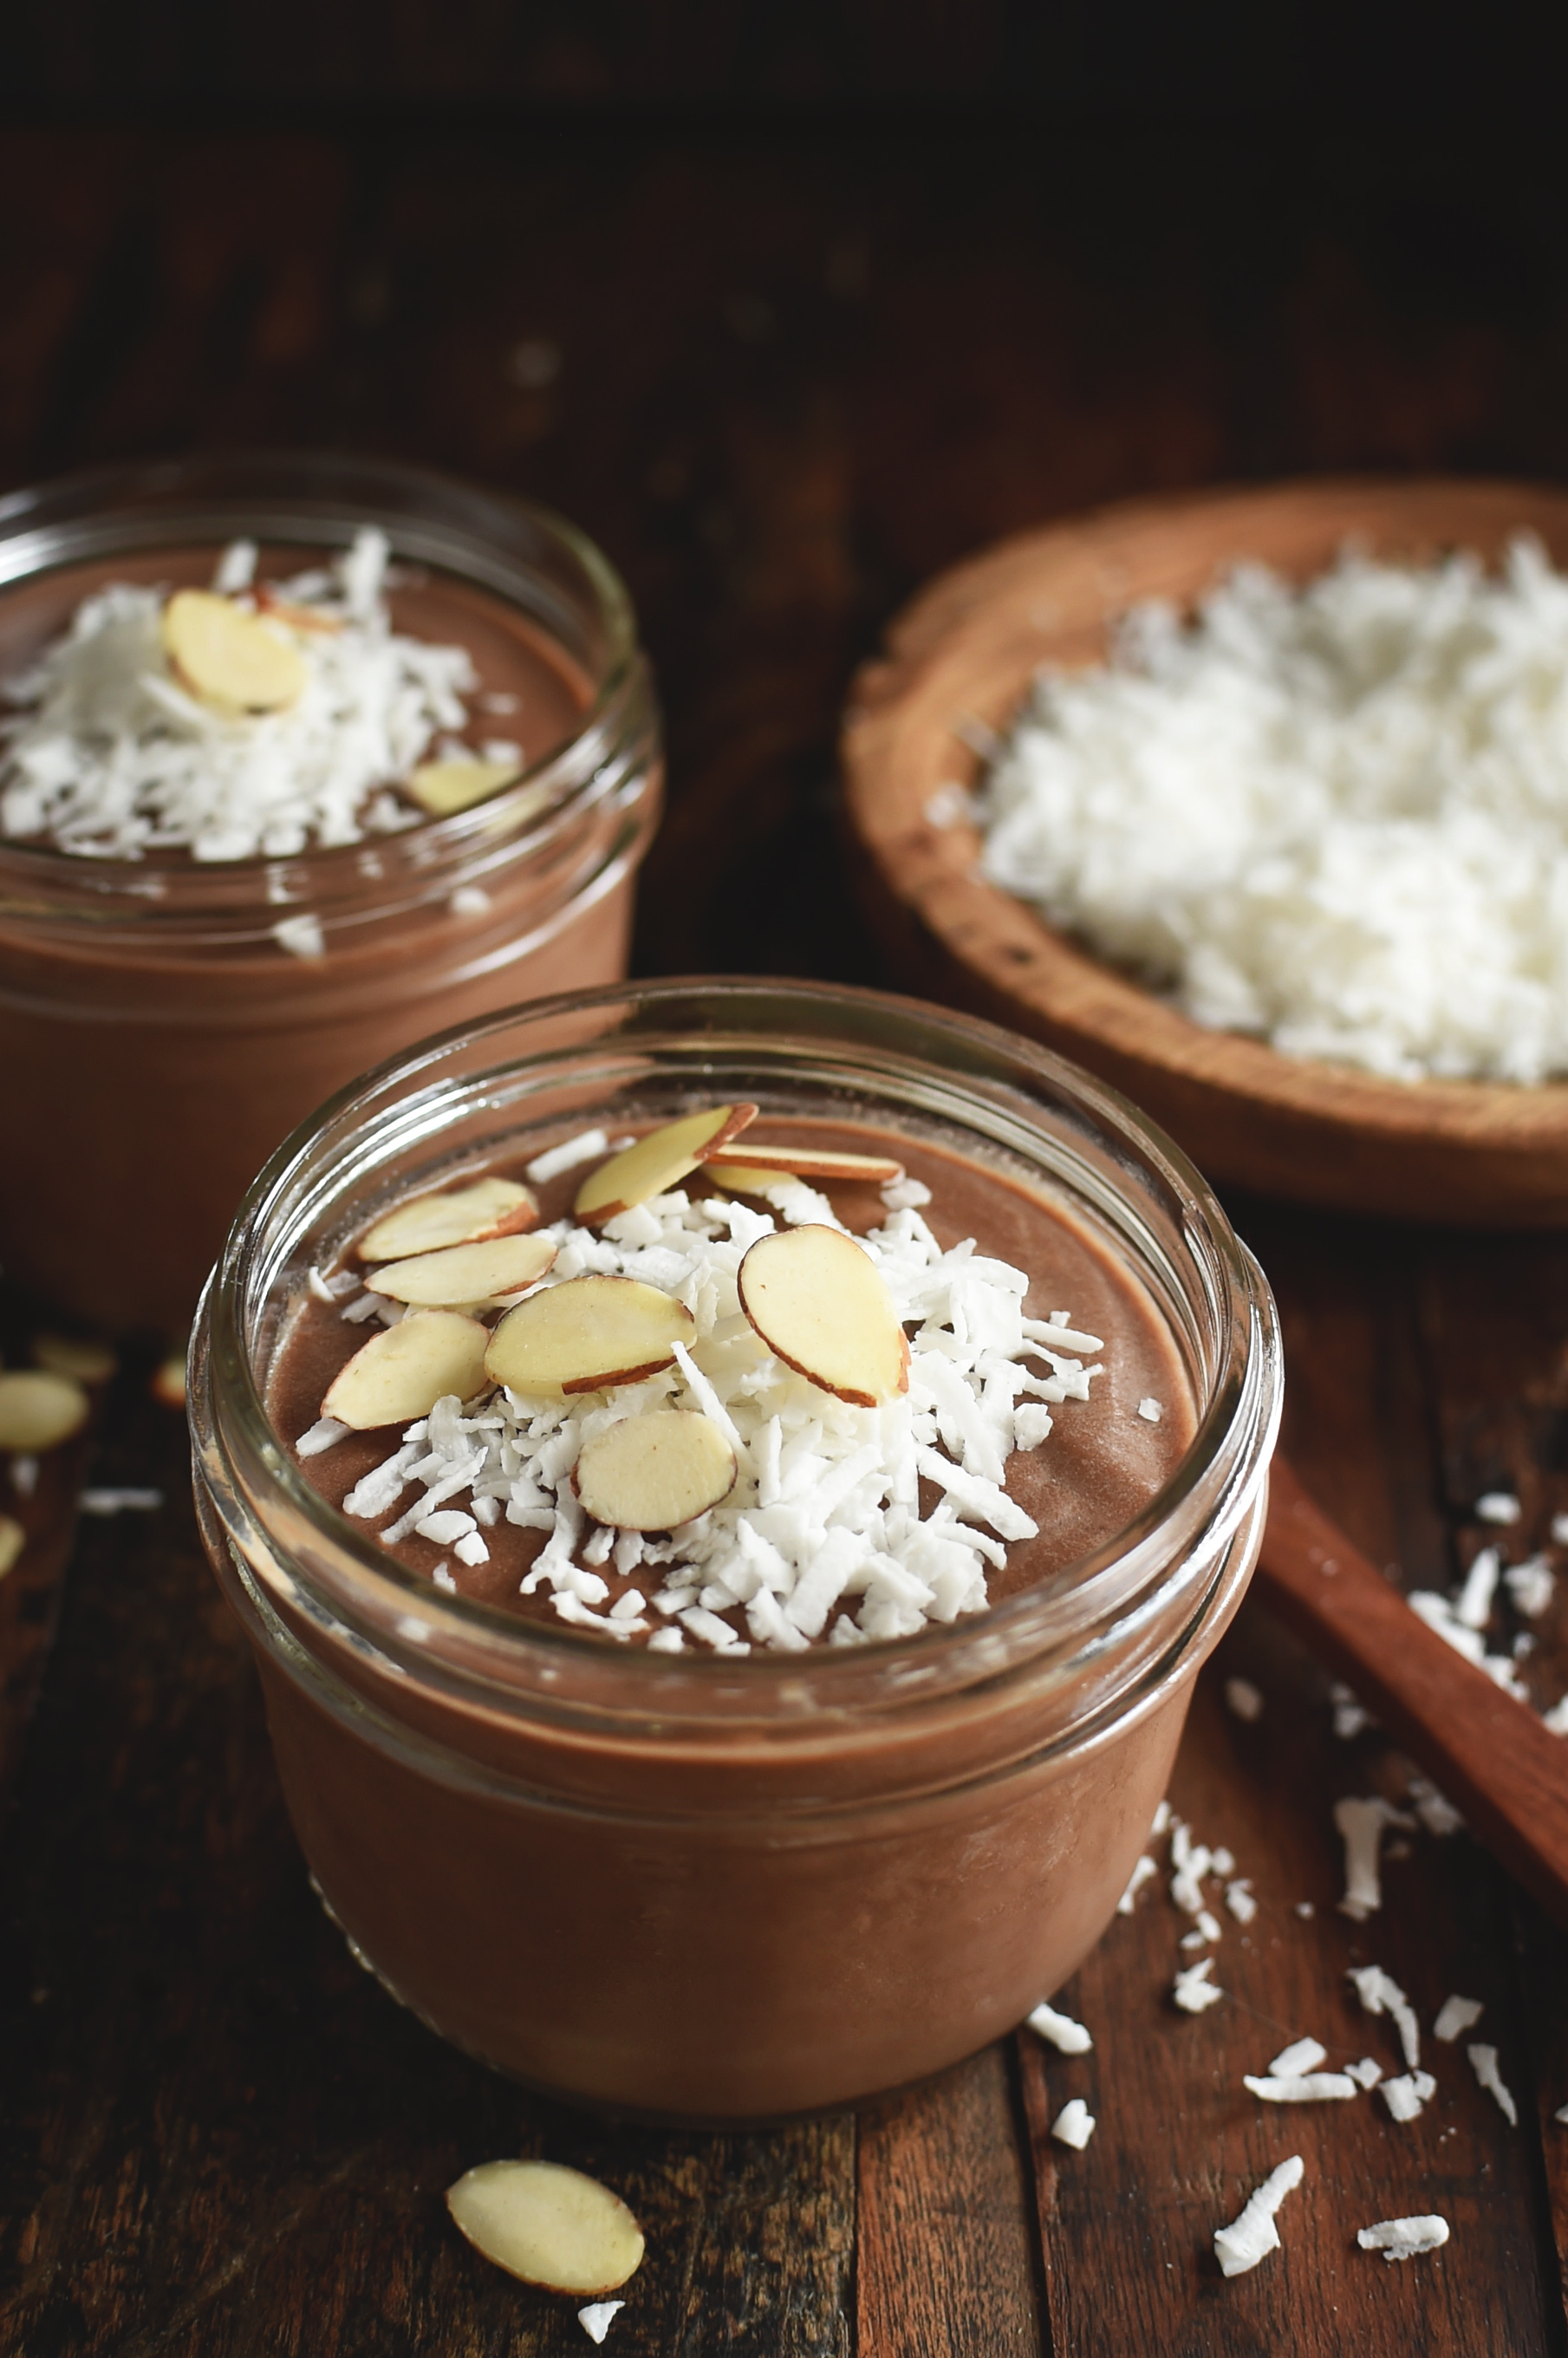 Chocolate Almond Avocado Pudding in a jar with flaked coconut in the background.